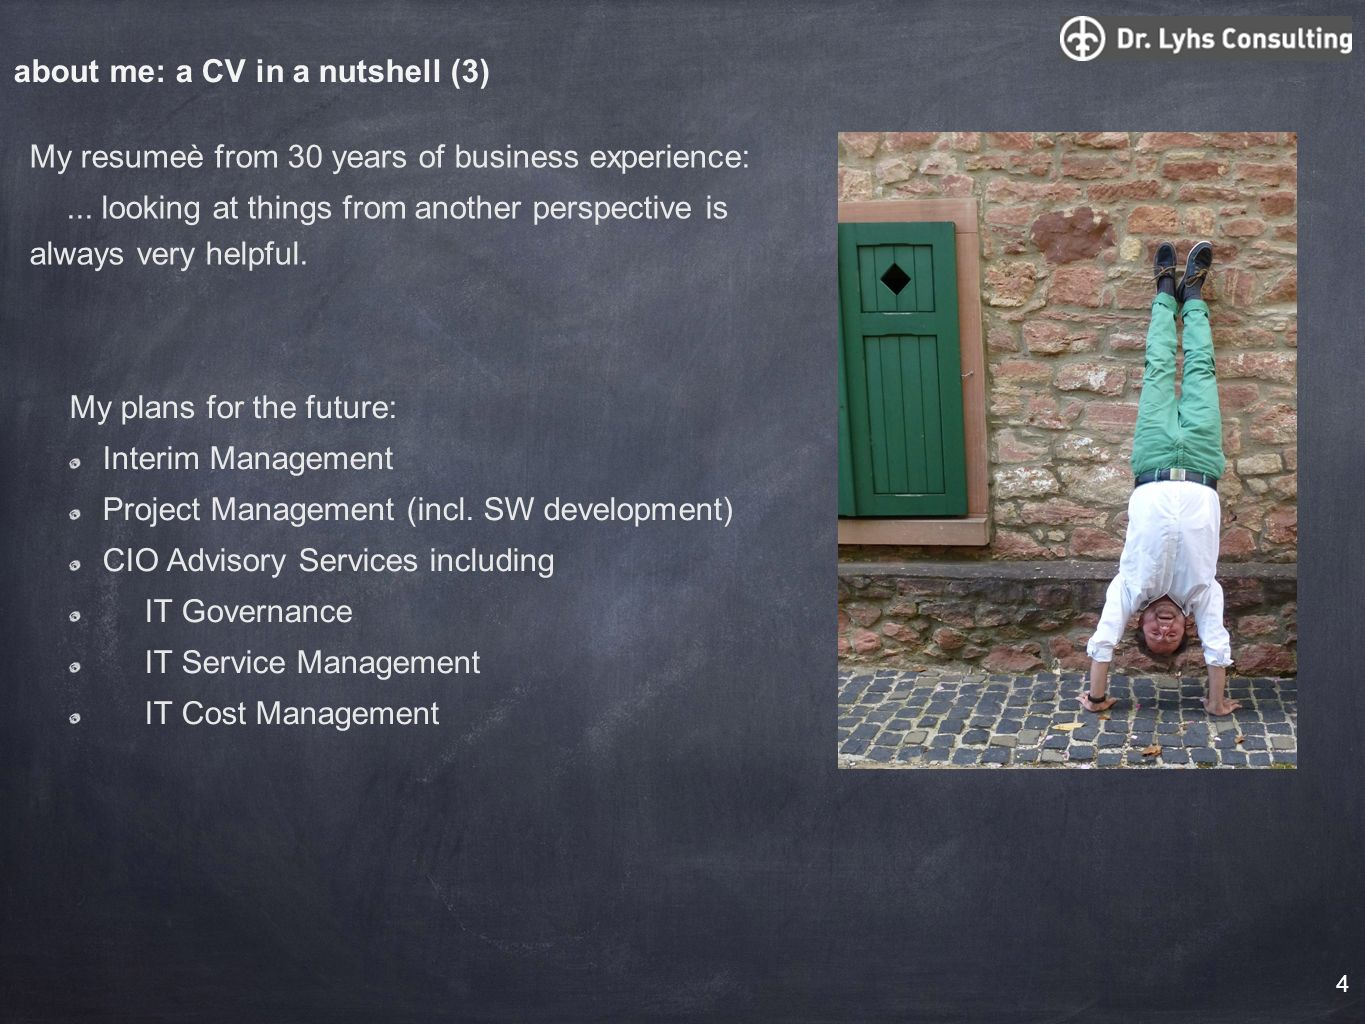 about me: a CV in a nutshell (3)